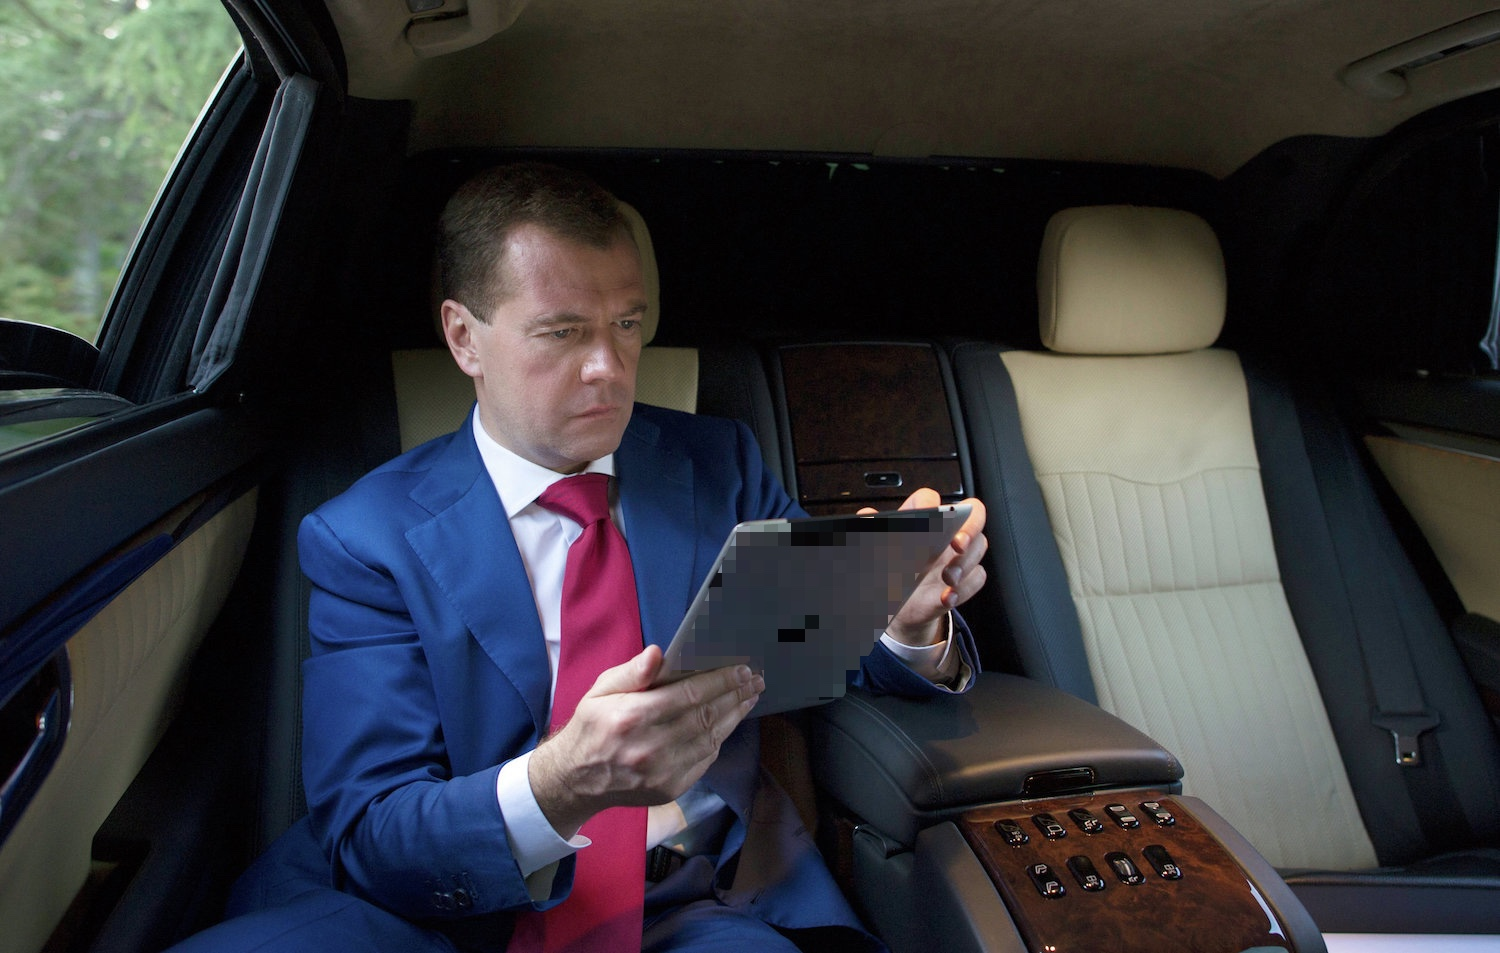 Medvedev does not want to see Apple gadgets in the government